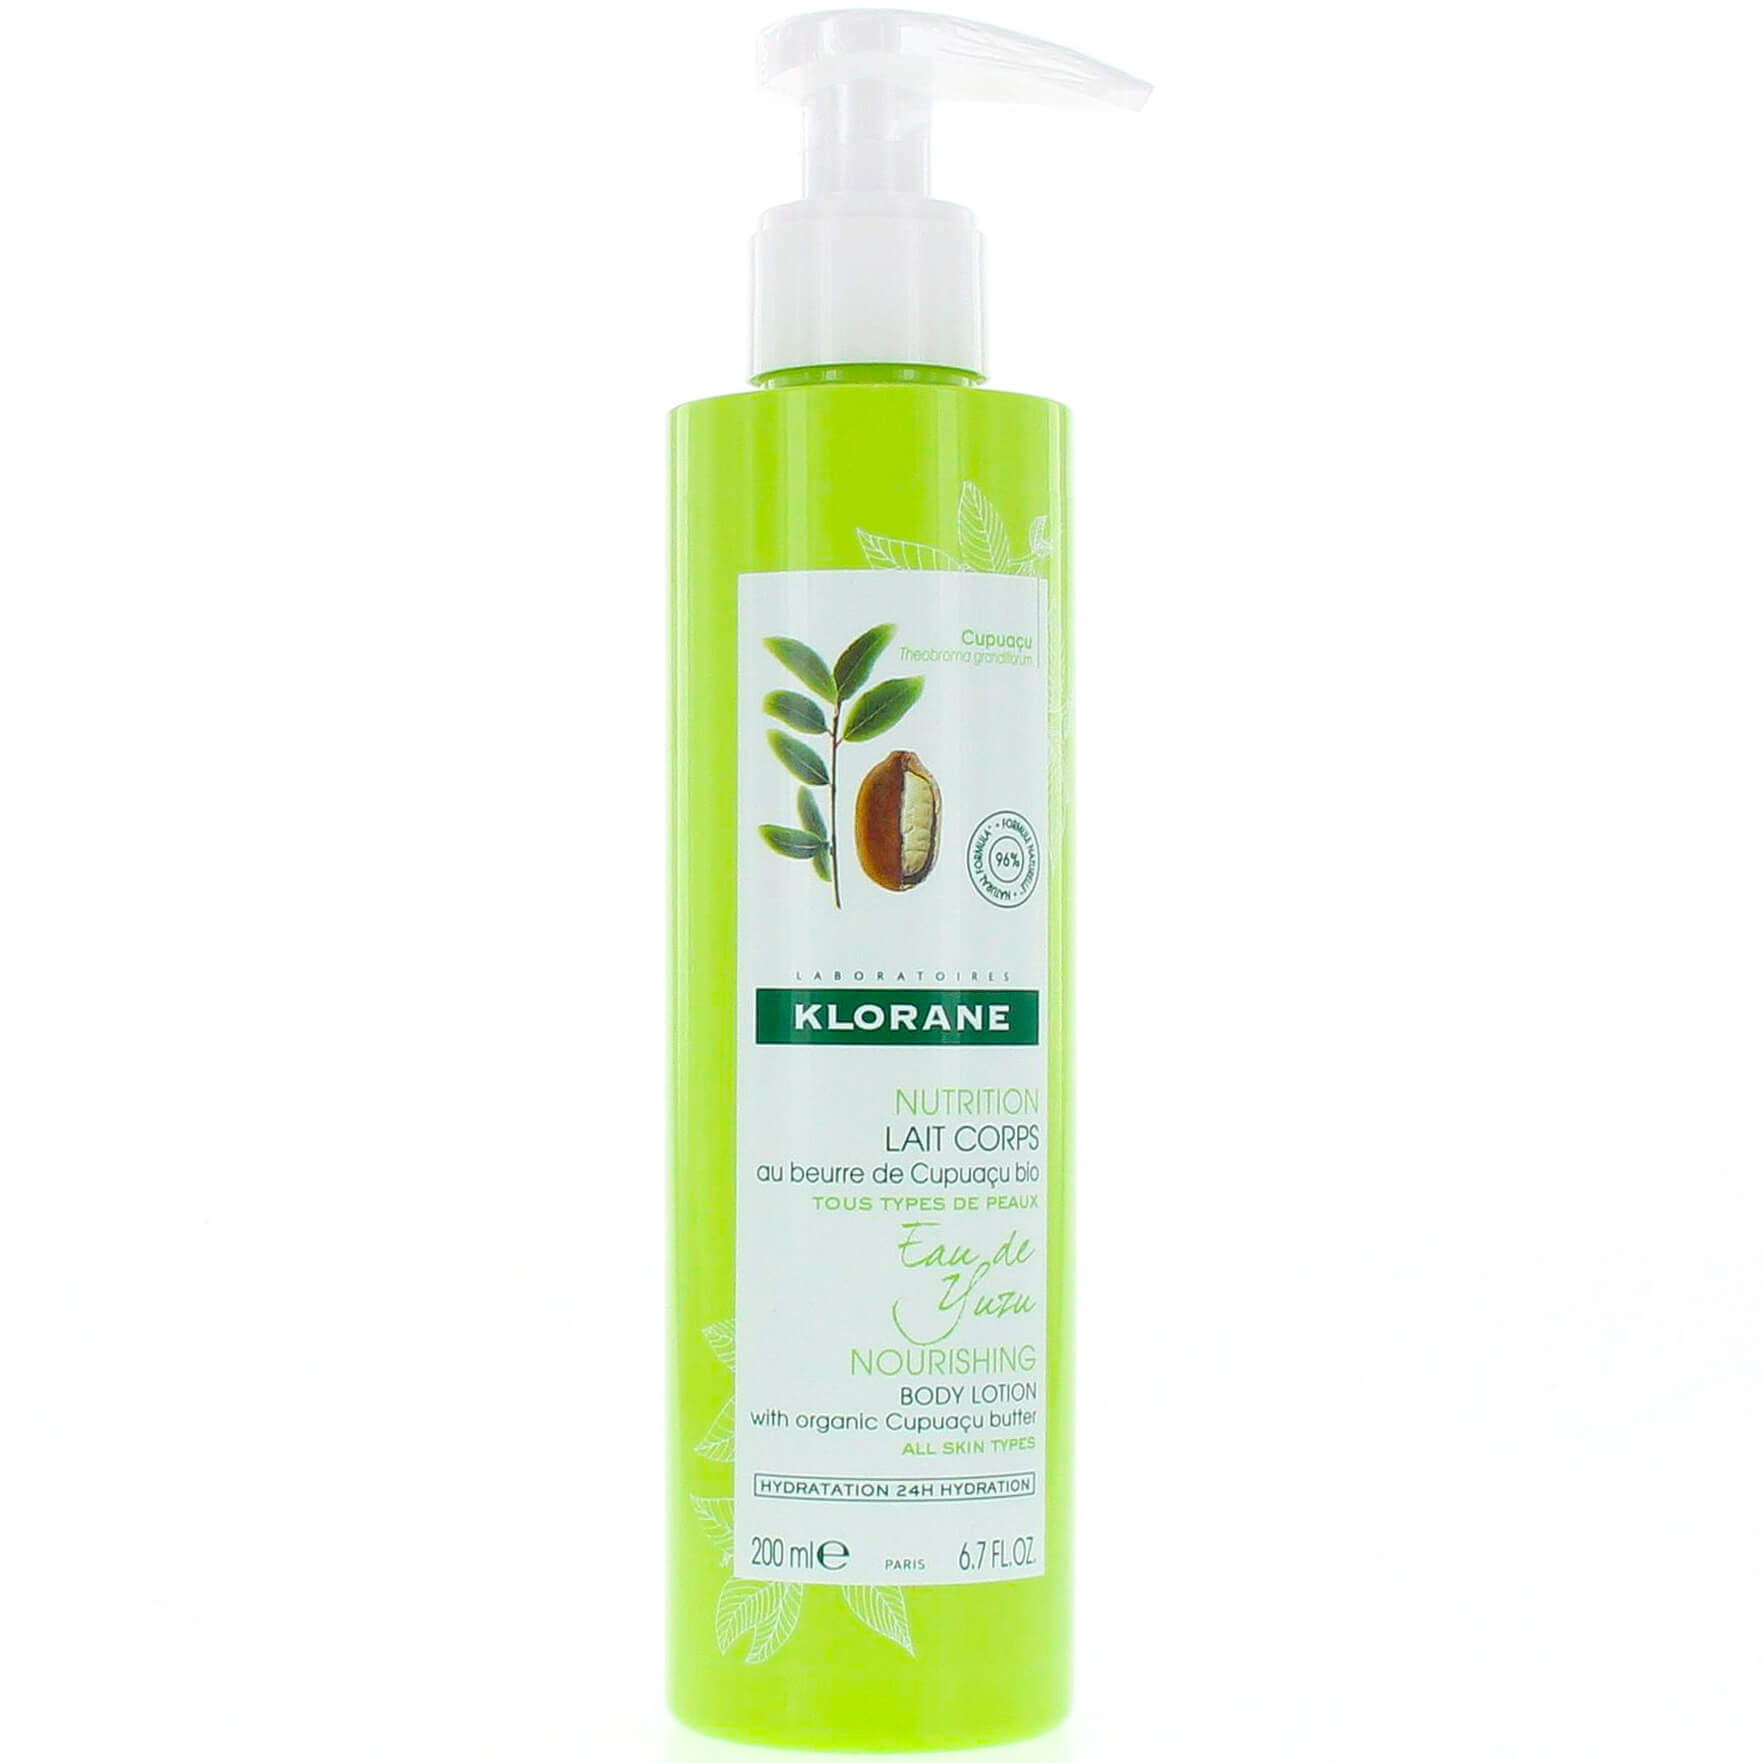 Klorane Nourishing Body Lotion with Organic Cupuacu Butter & Yuzu Infusion Θρεπτικό Γαλάκτωμα Σώματος με Άρωμα Νερού Yuzu 200ml